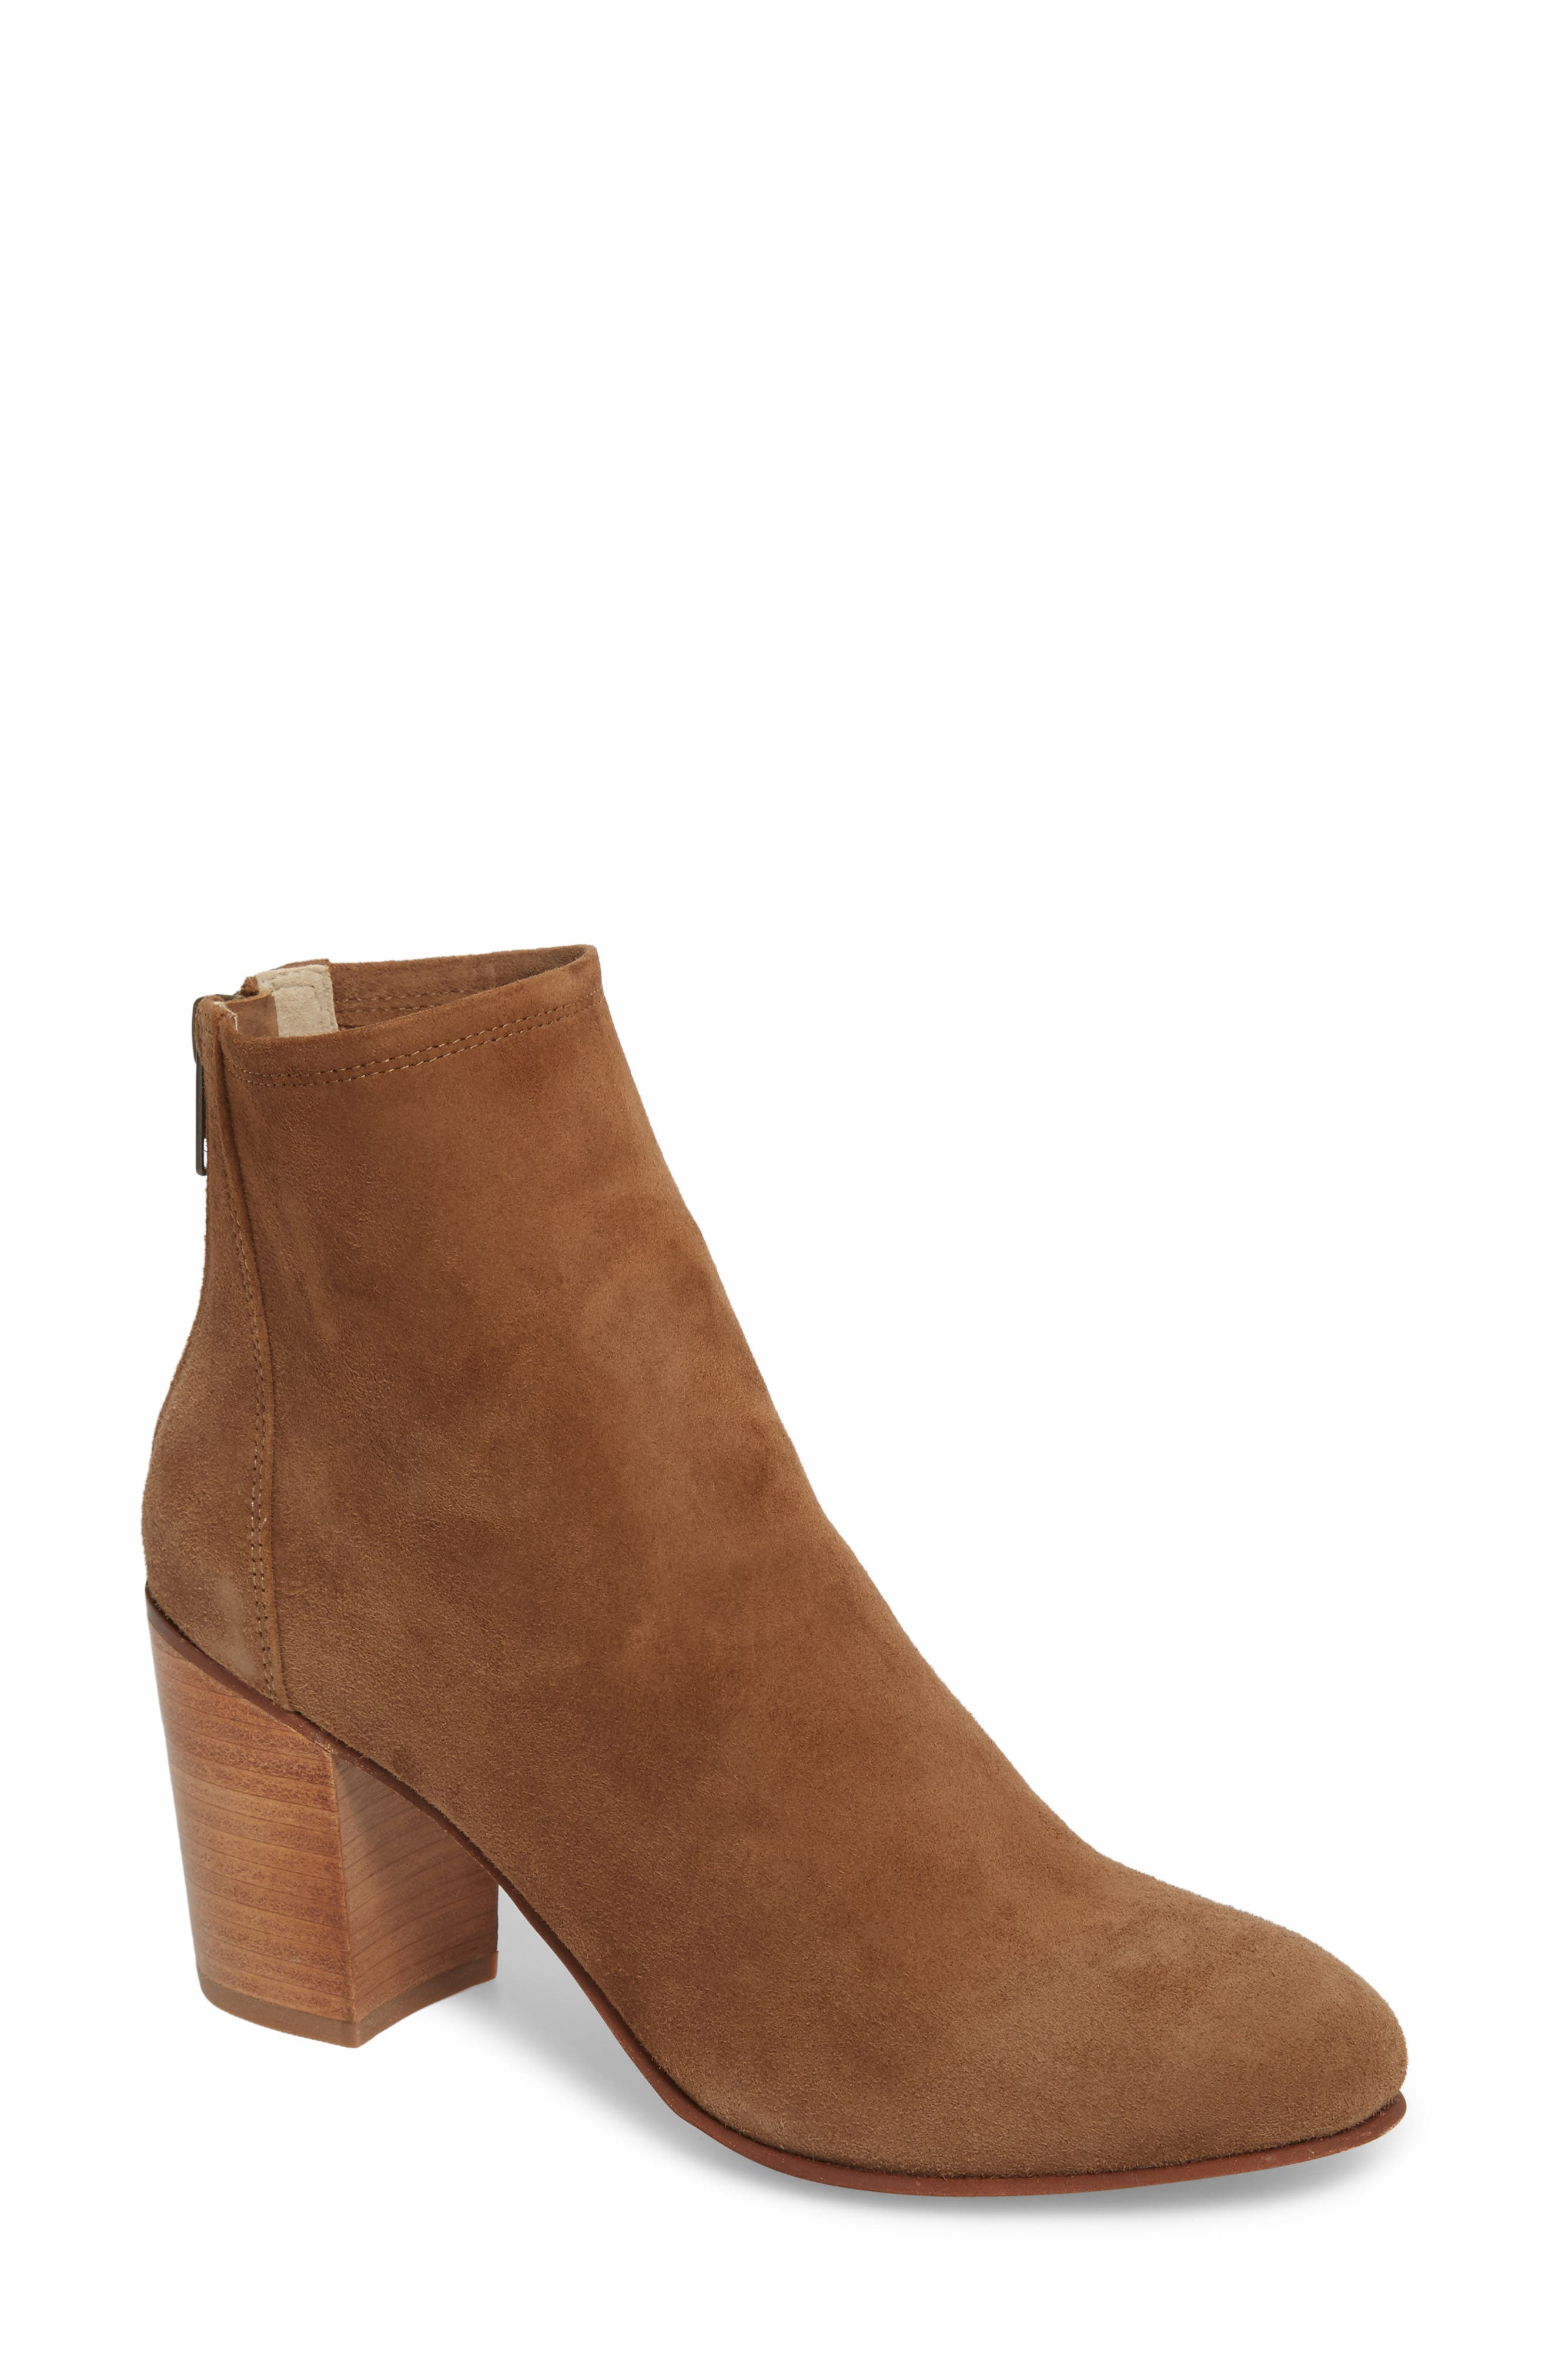 Tawny Bootie,                         Main,                         color, Khaki Suede